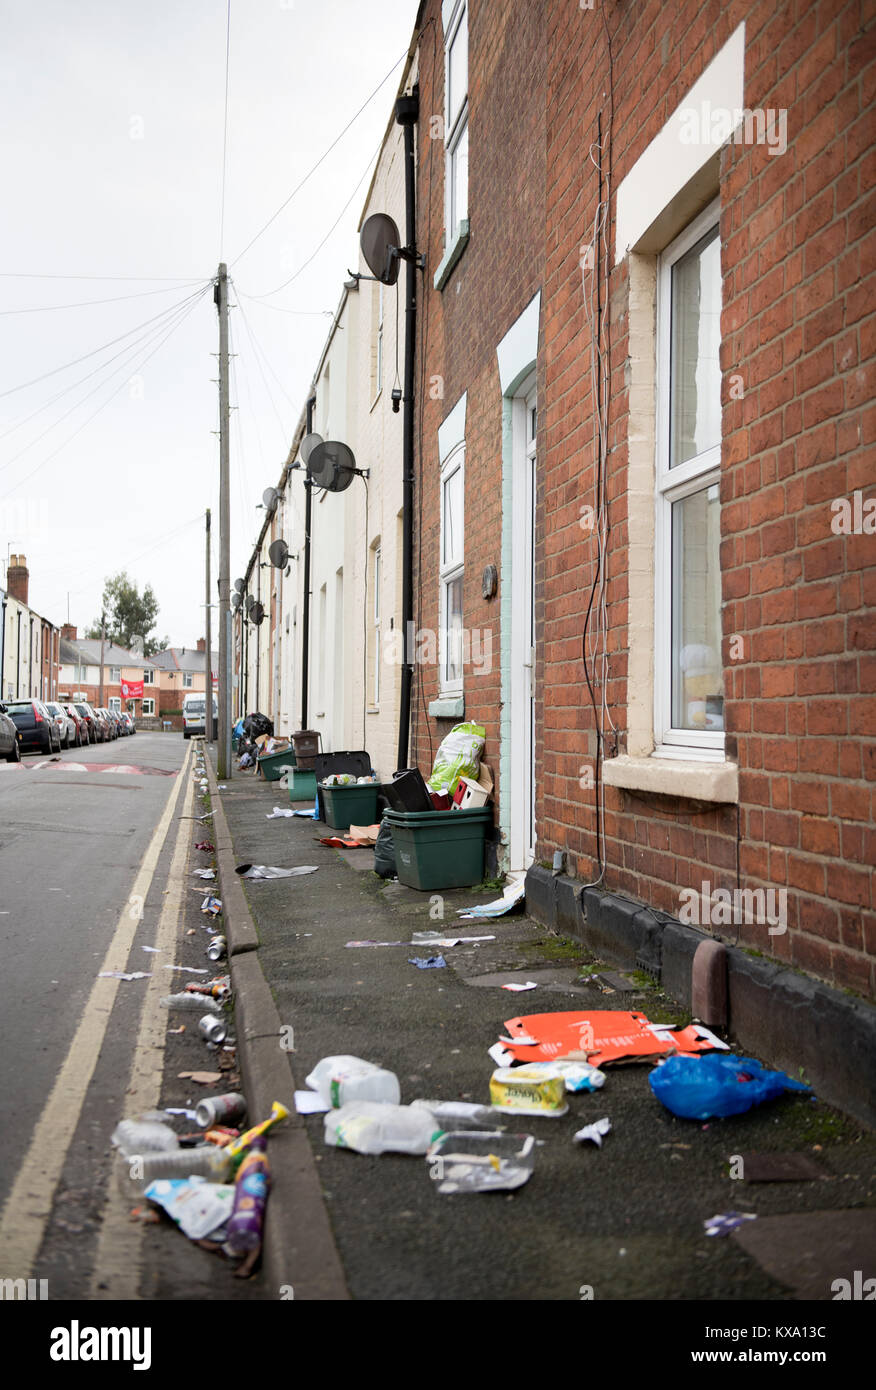 Rubbish blown around a Gloucester street on recycling day UK - Stock Image